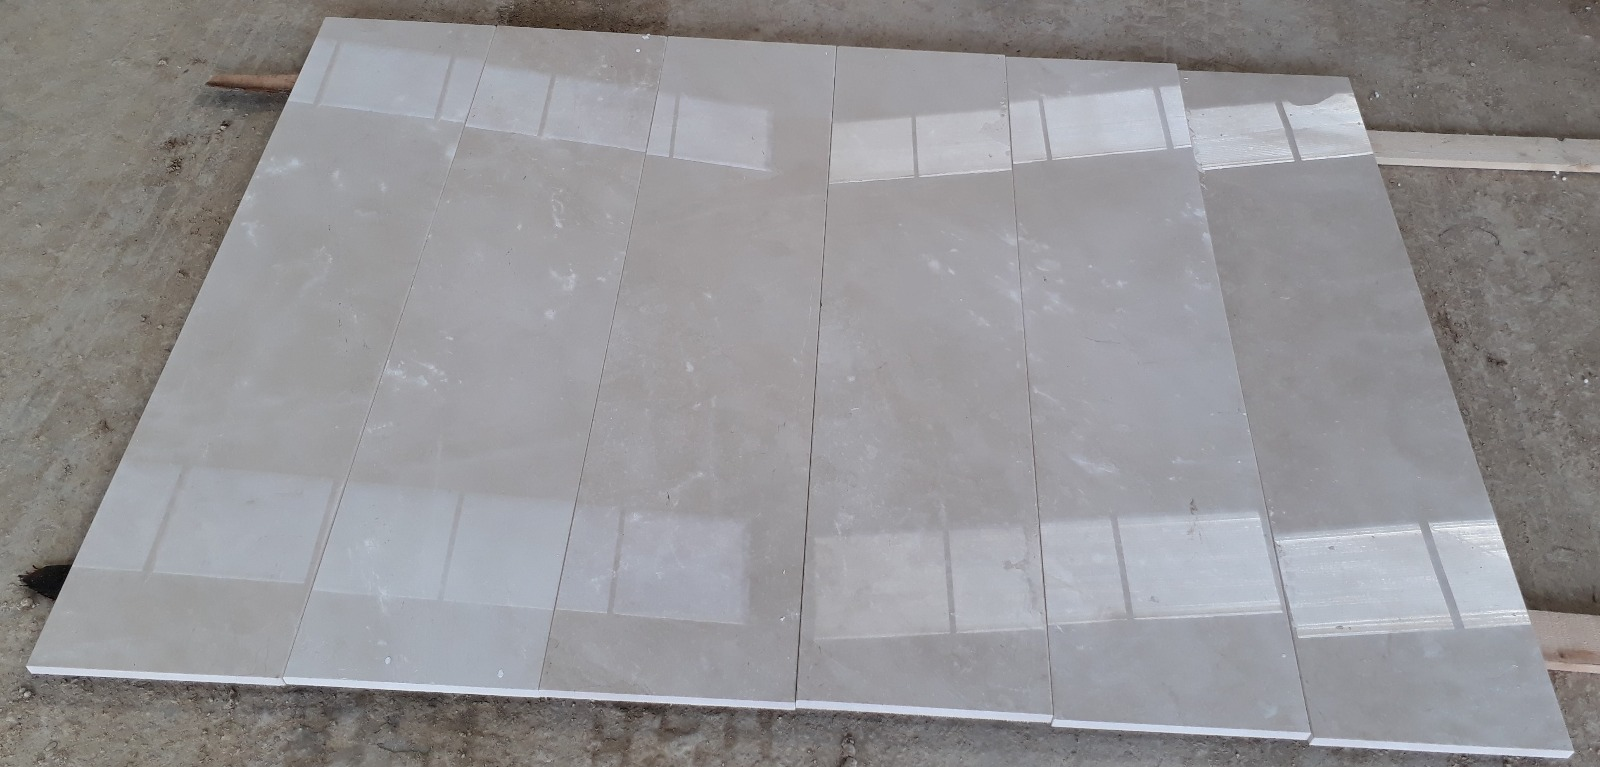 Elmali Beige_First Selection_300x1200x20 mm_Polished_Rejected__1_